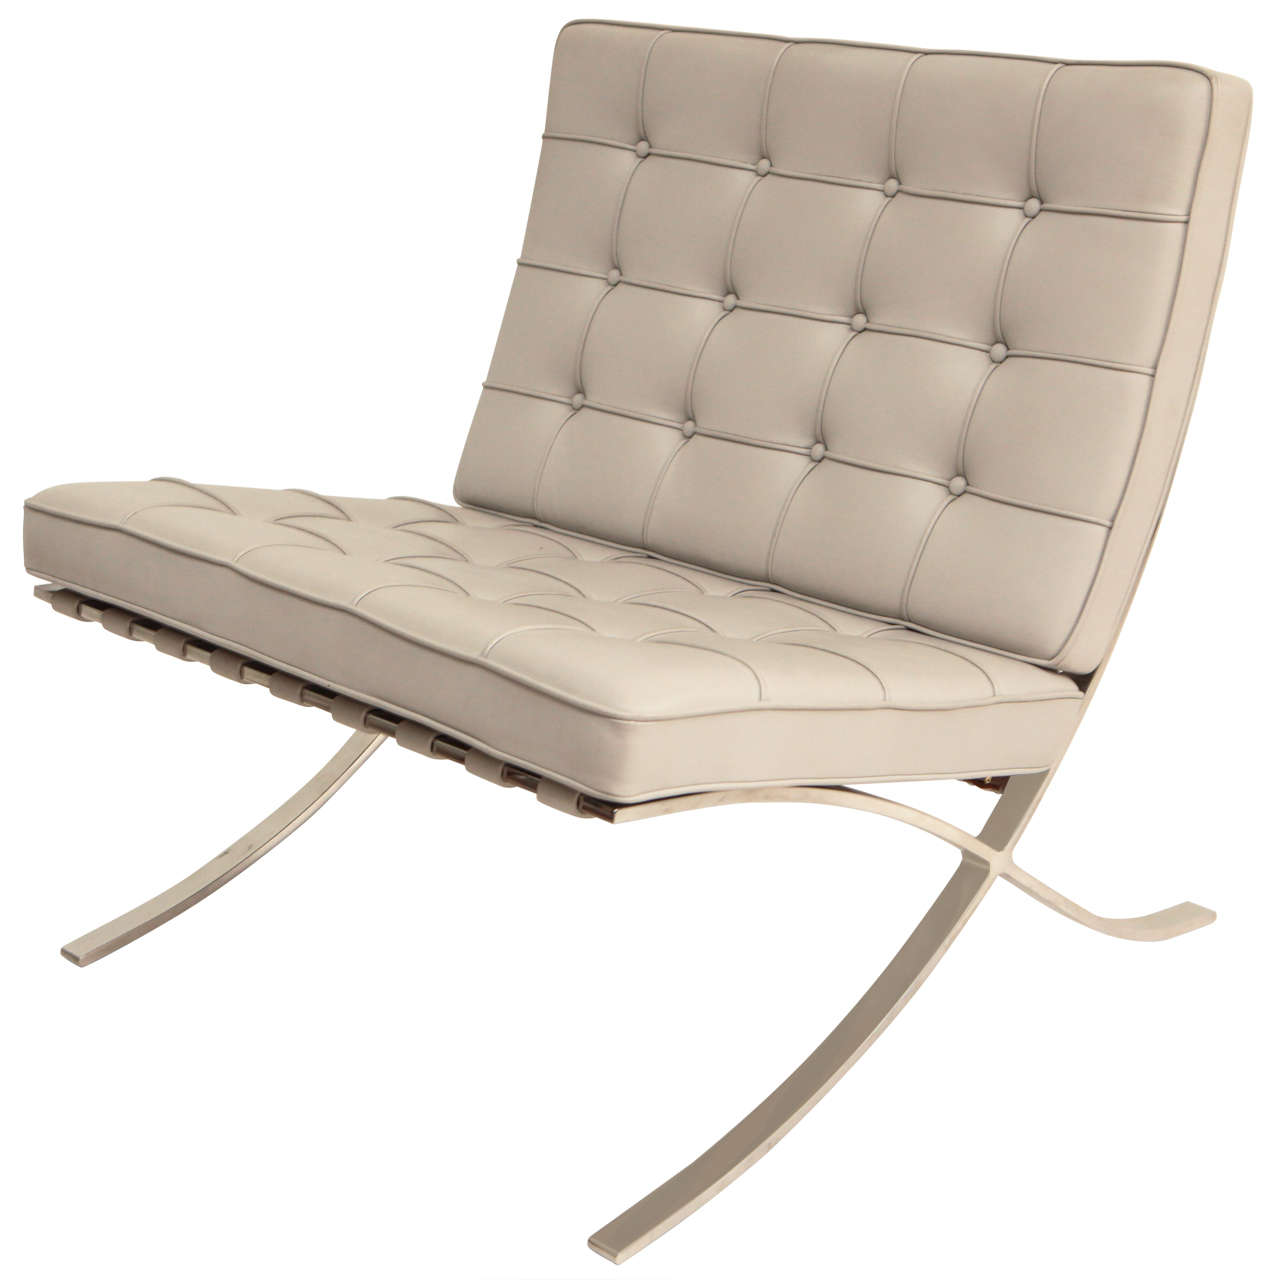 Mies van der rohe chair - Mies Van Der Rohe Barcelona Chair For Knoll 1929 1948 1